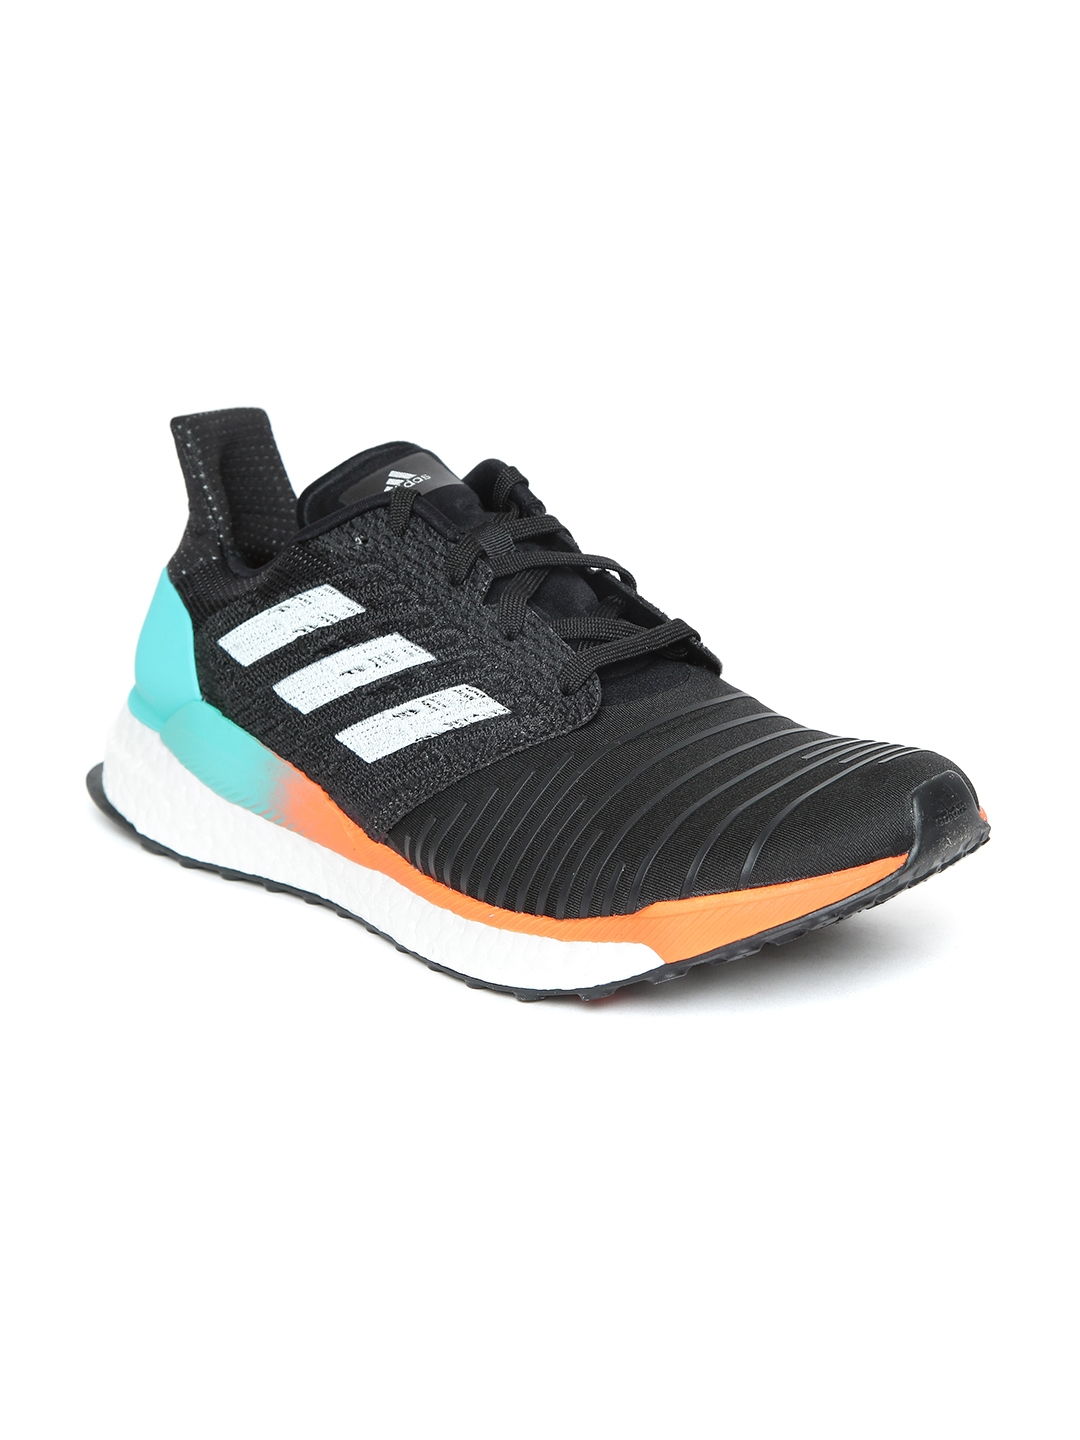 357c4da8eebc9 Buy ADIDAS Men Black Solar Boost Running Shoes - Sports Shoes for ...